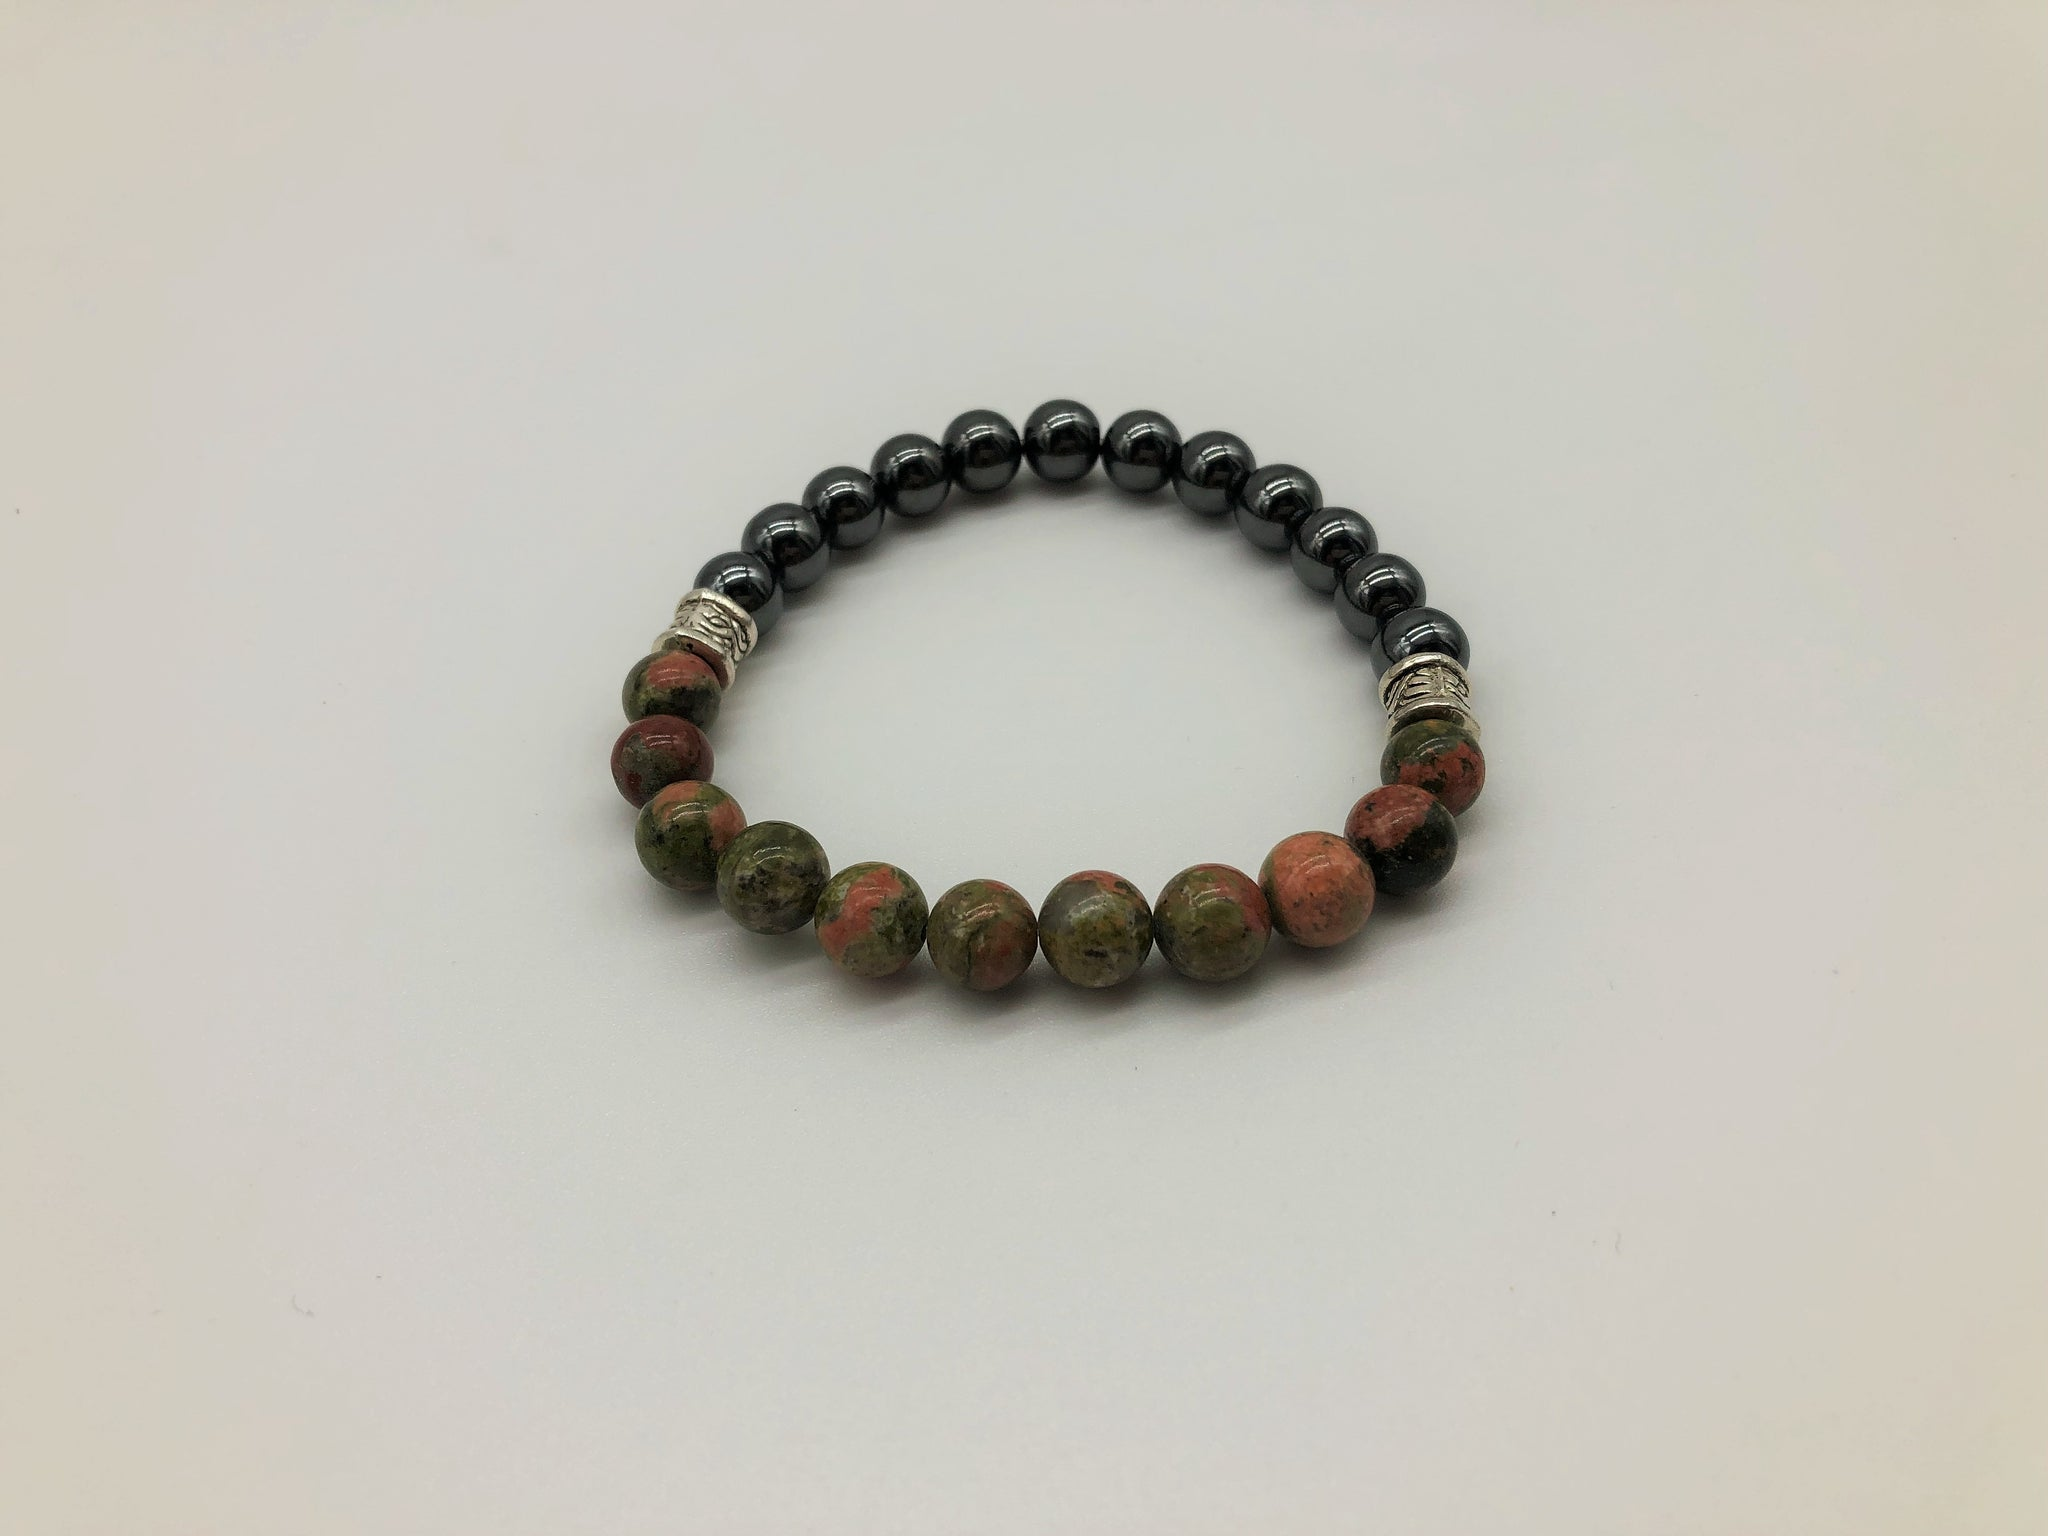 Gentleman's Unakite & Hematite Bracelet Promoting Physical & Emotional Wellness and Emotional Grounding